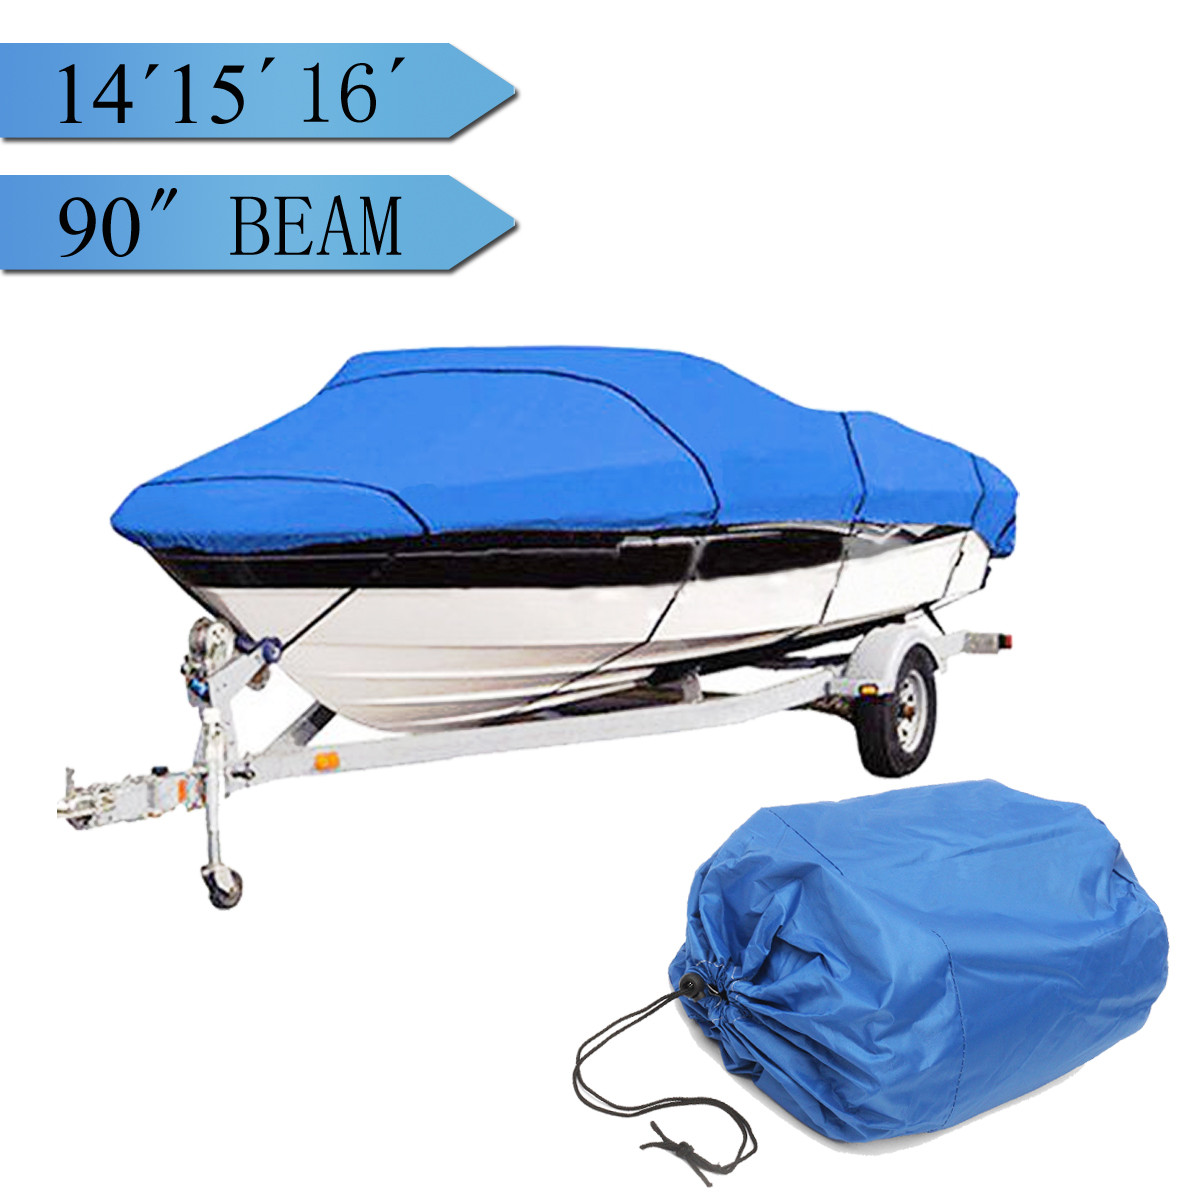 Heavy 14 16ft Beam 90inch Trailerable 210D Marine Grade Boat Cover Waterproof UV Protected Blue